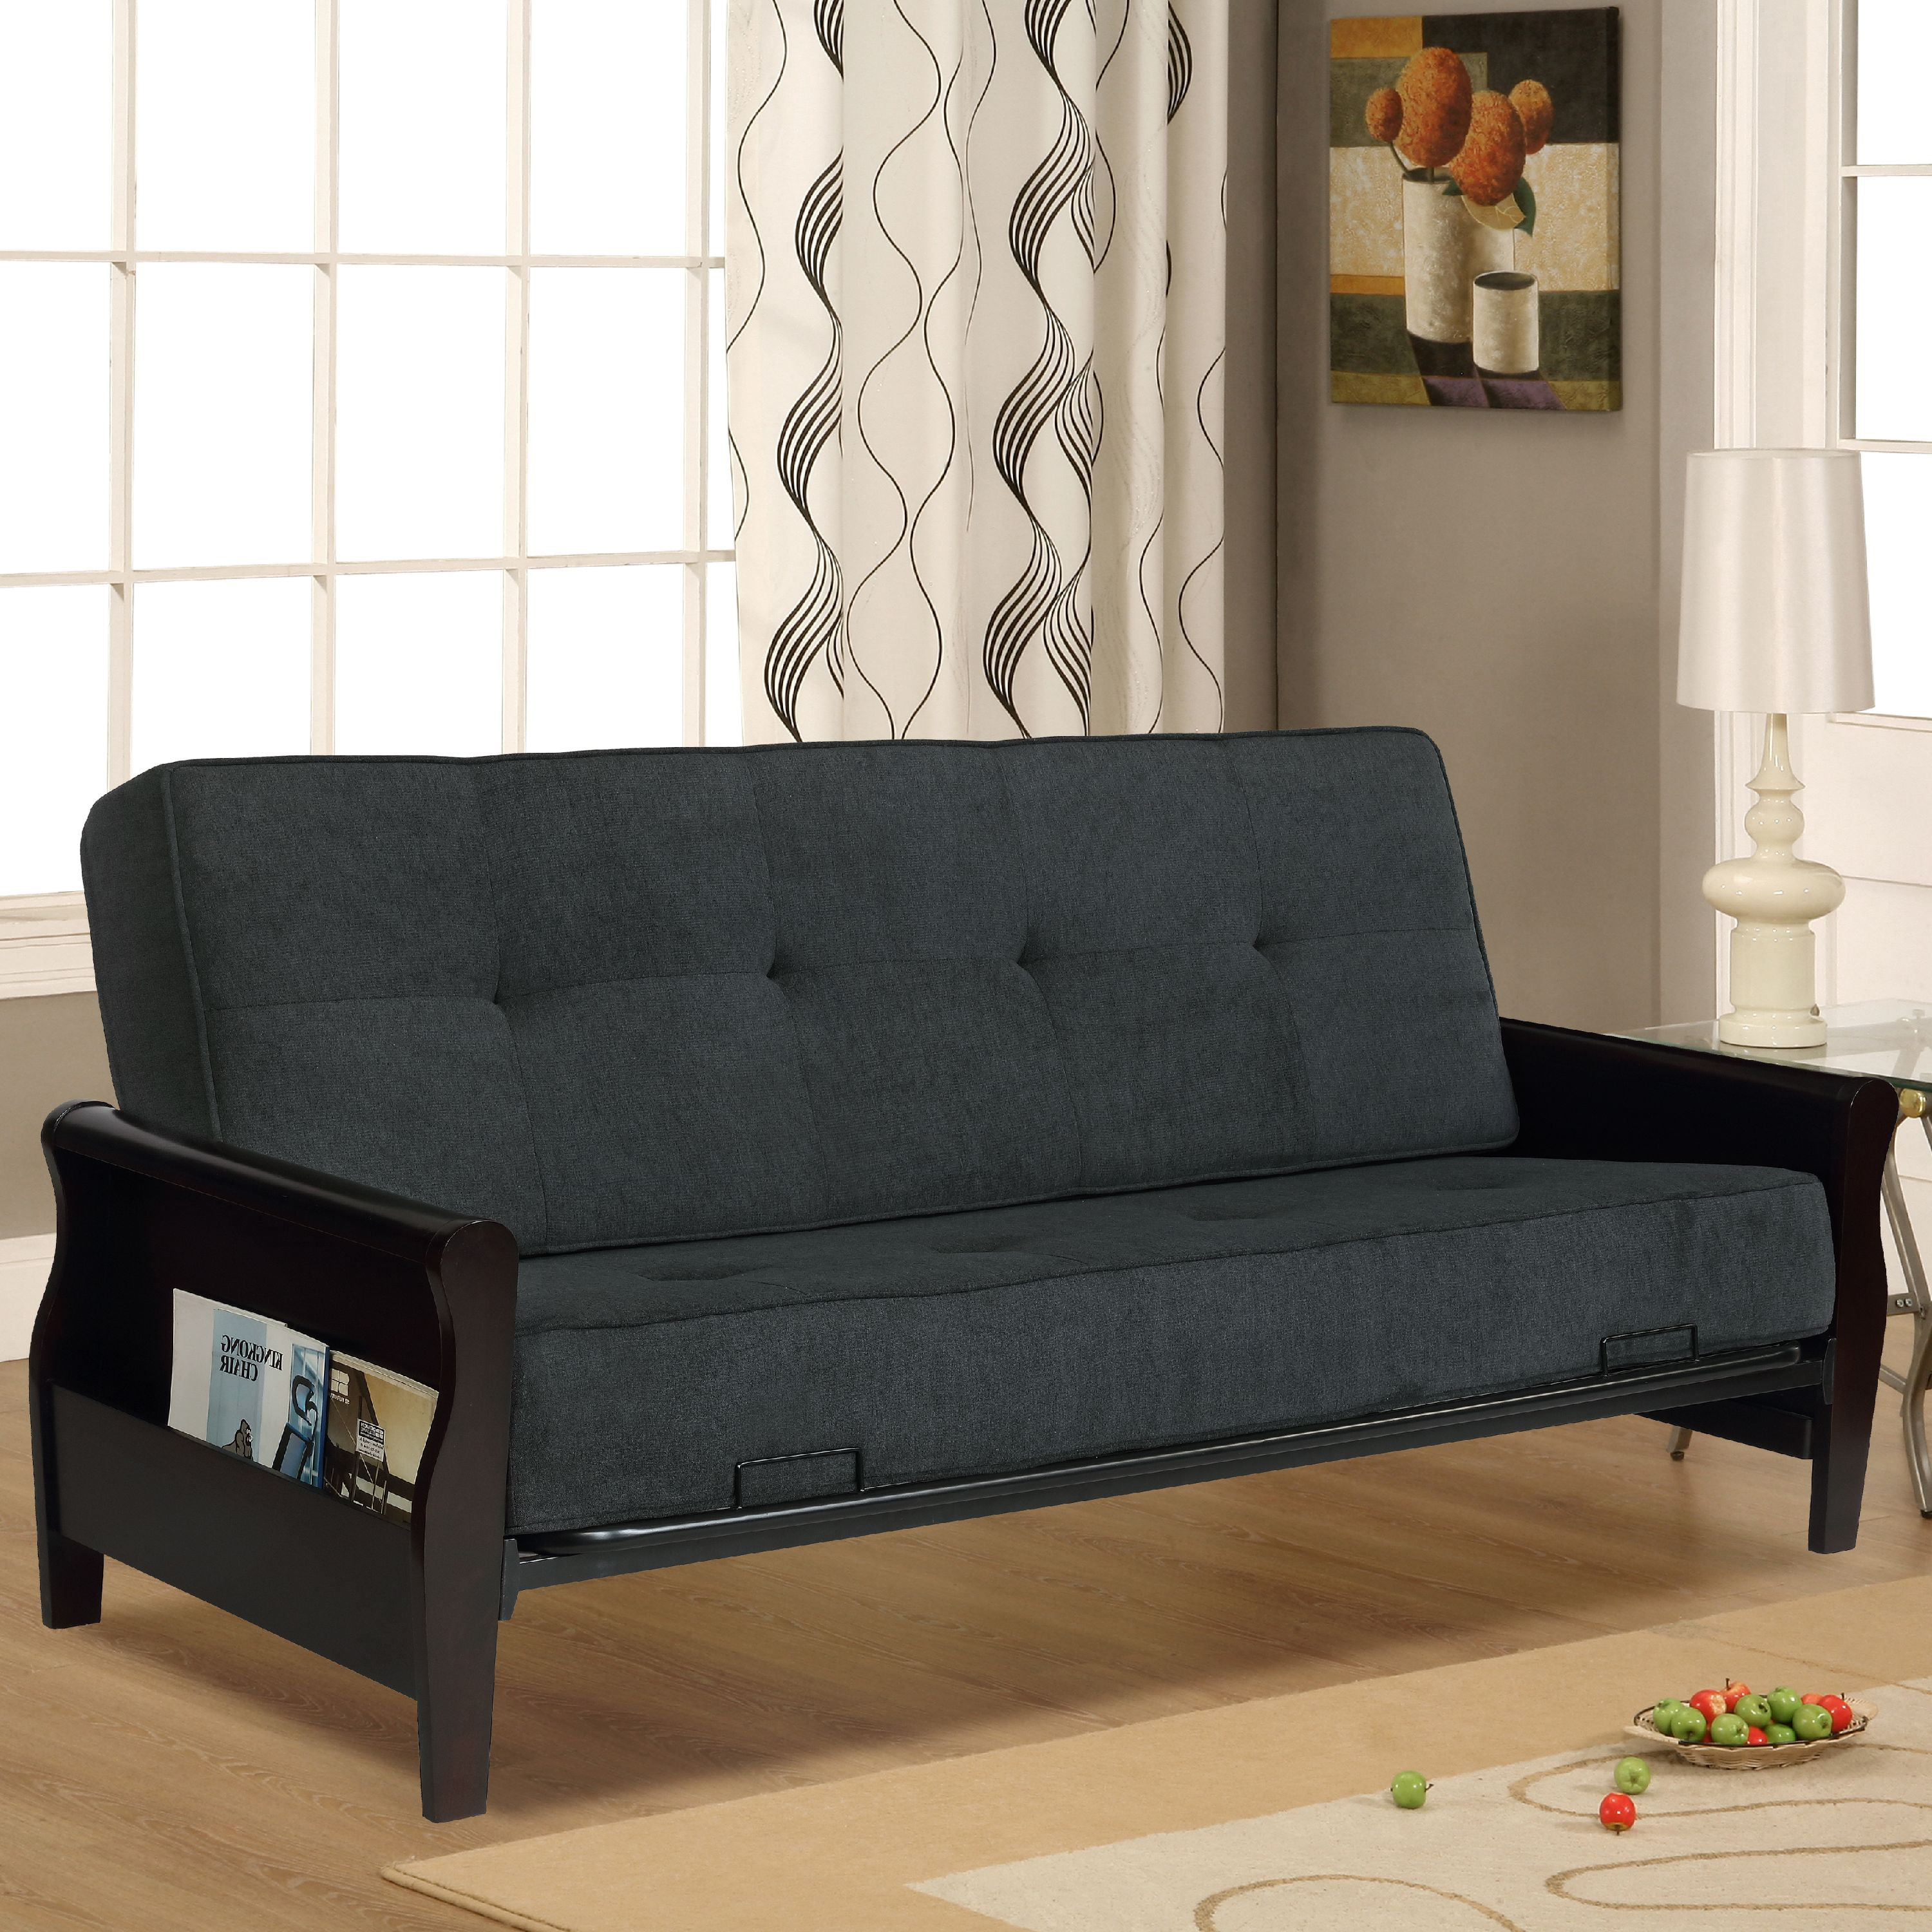 Lounger Conway Wood Storage Arm Futon